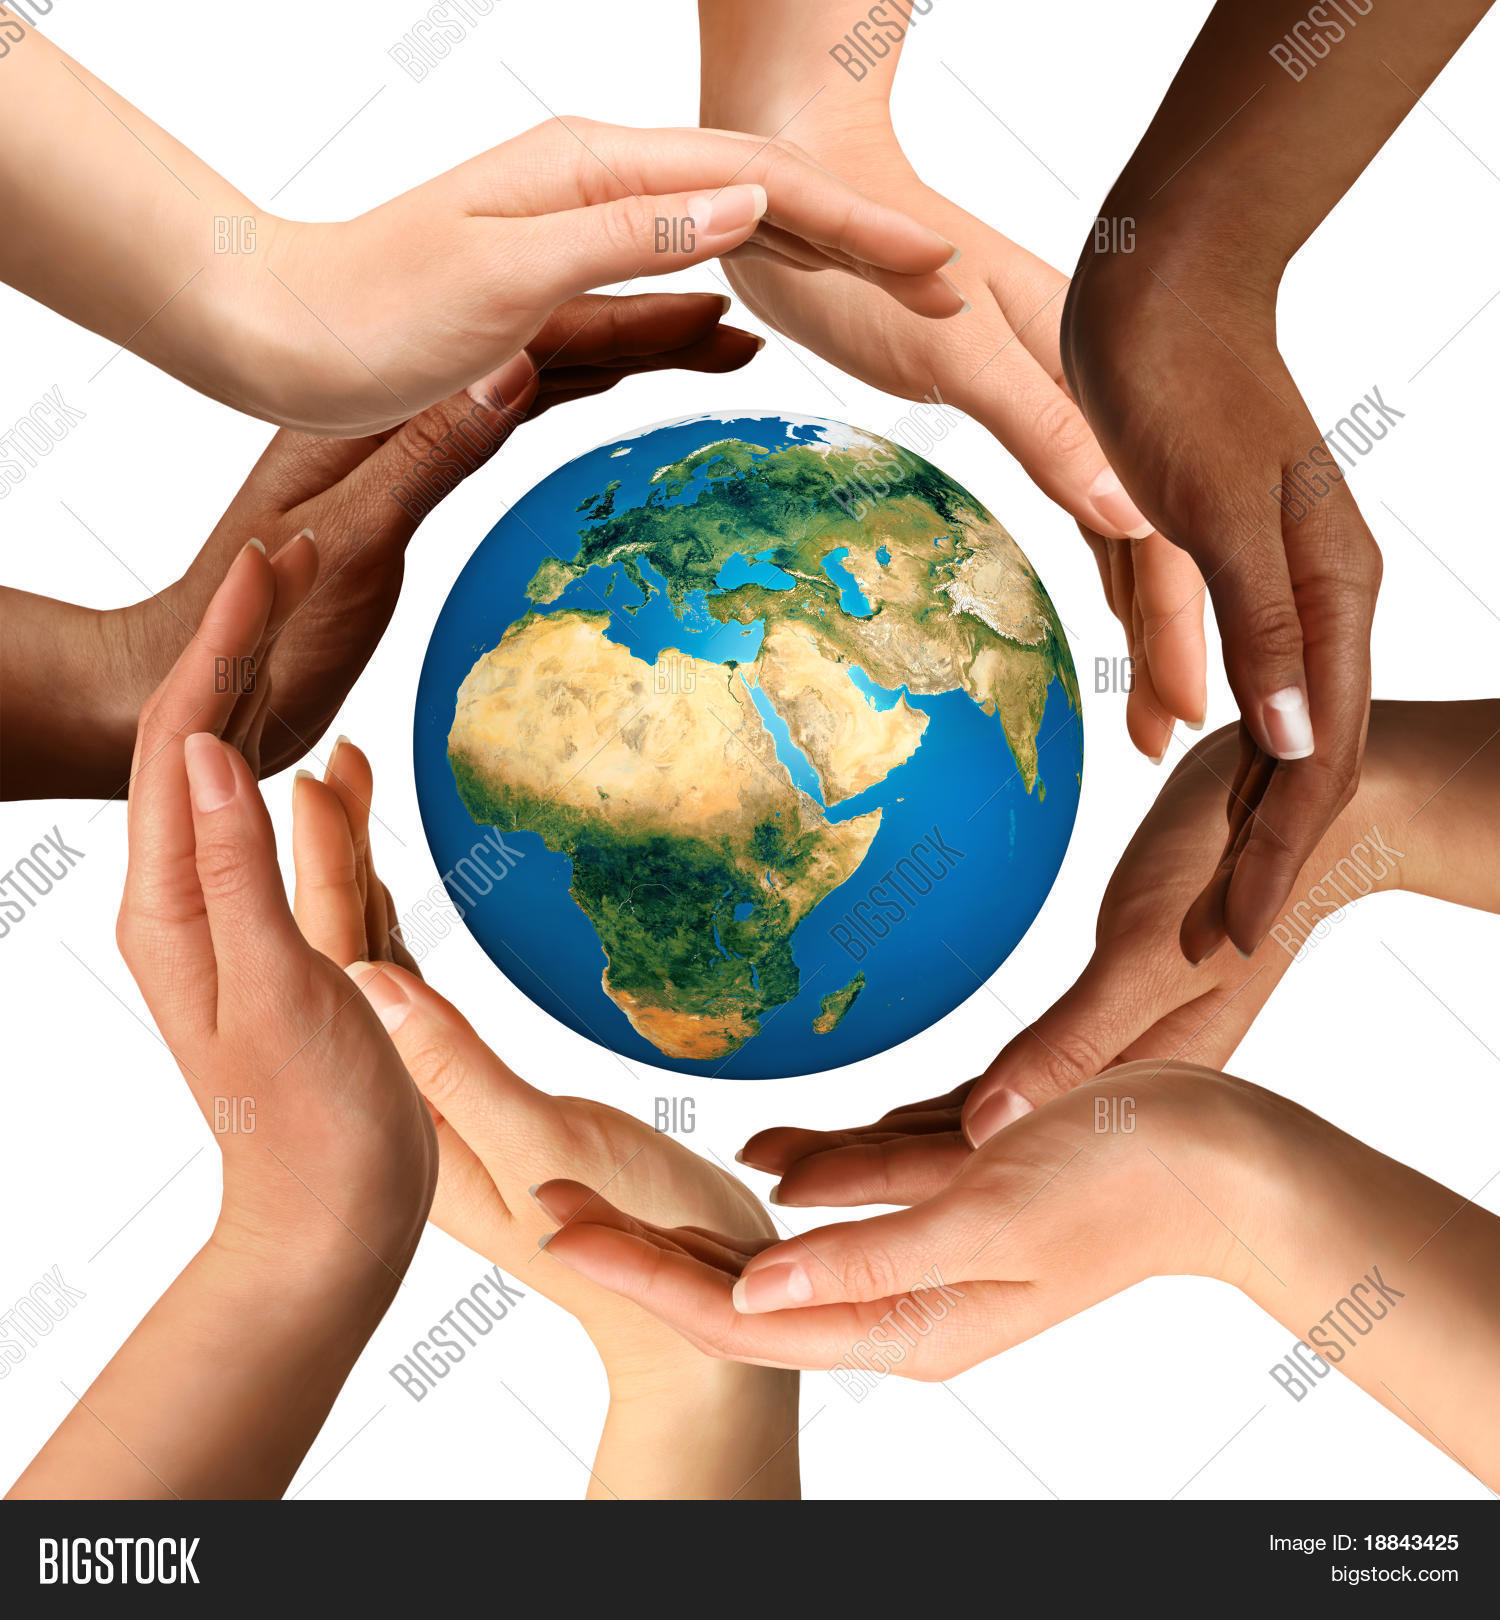 Conceptual symbol multiracial human image photo bigstock conceptual symbol of multiracial human hands surrounding the earth globe unity world peace biocorpaavc